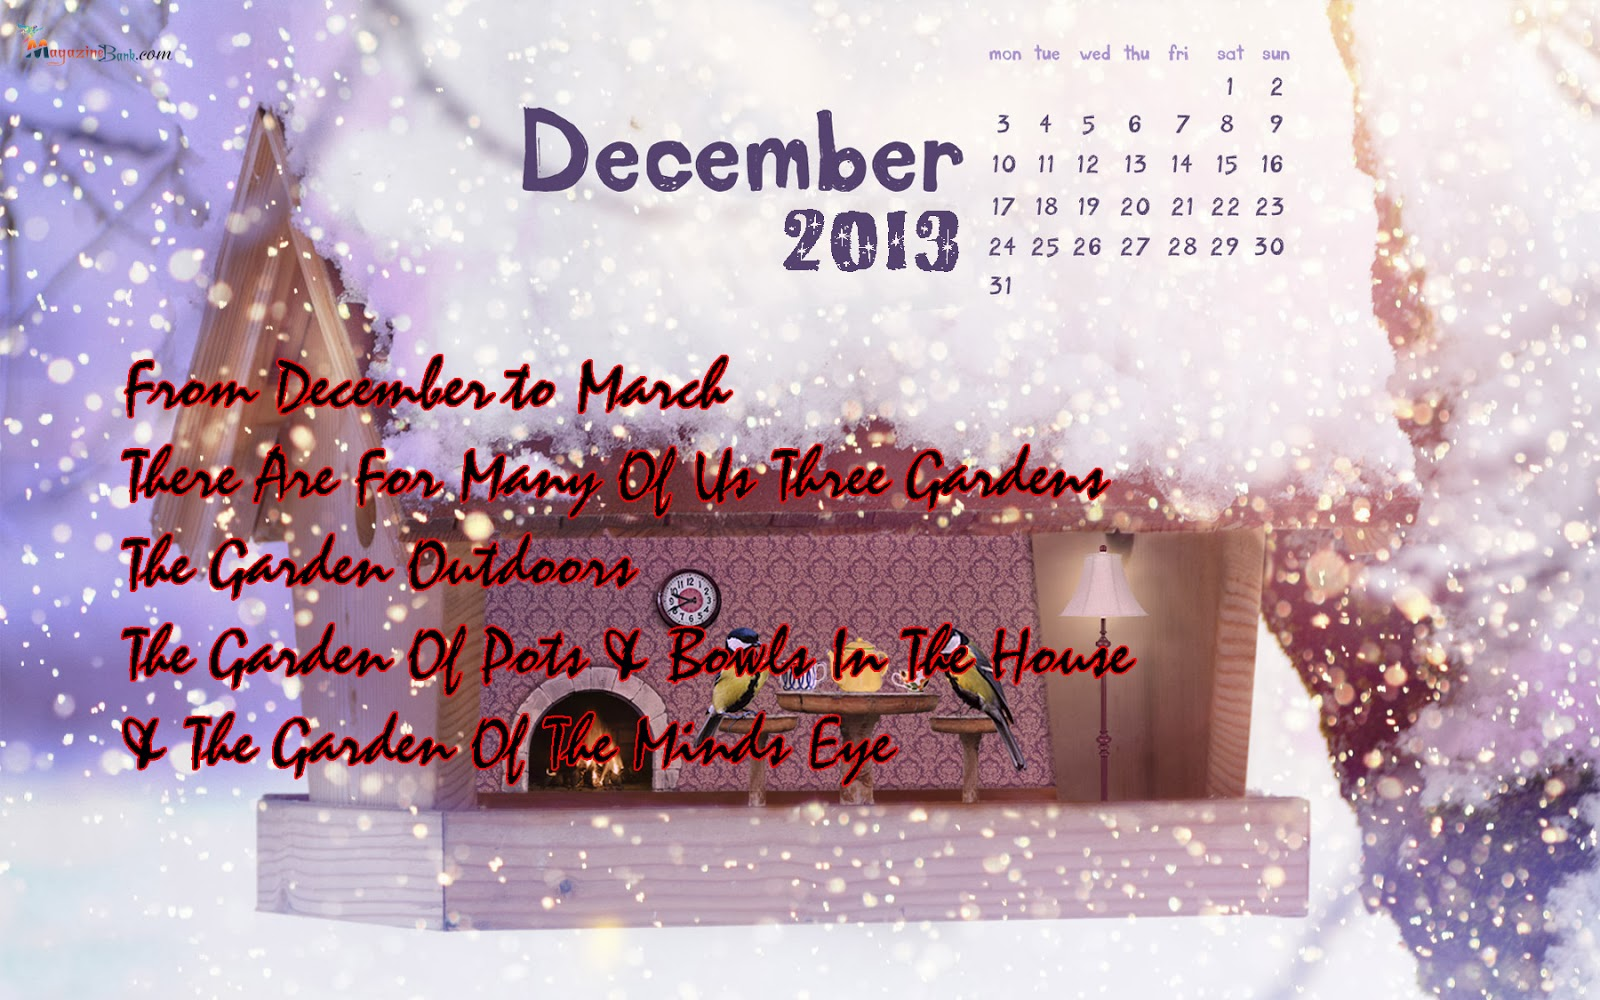 December quotes winter quotes